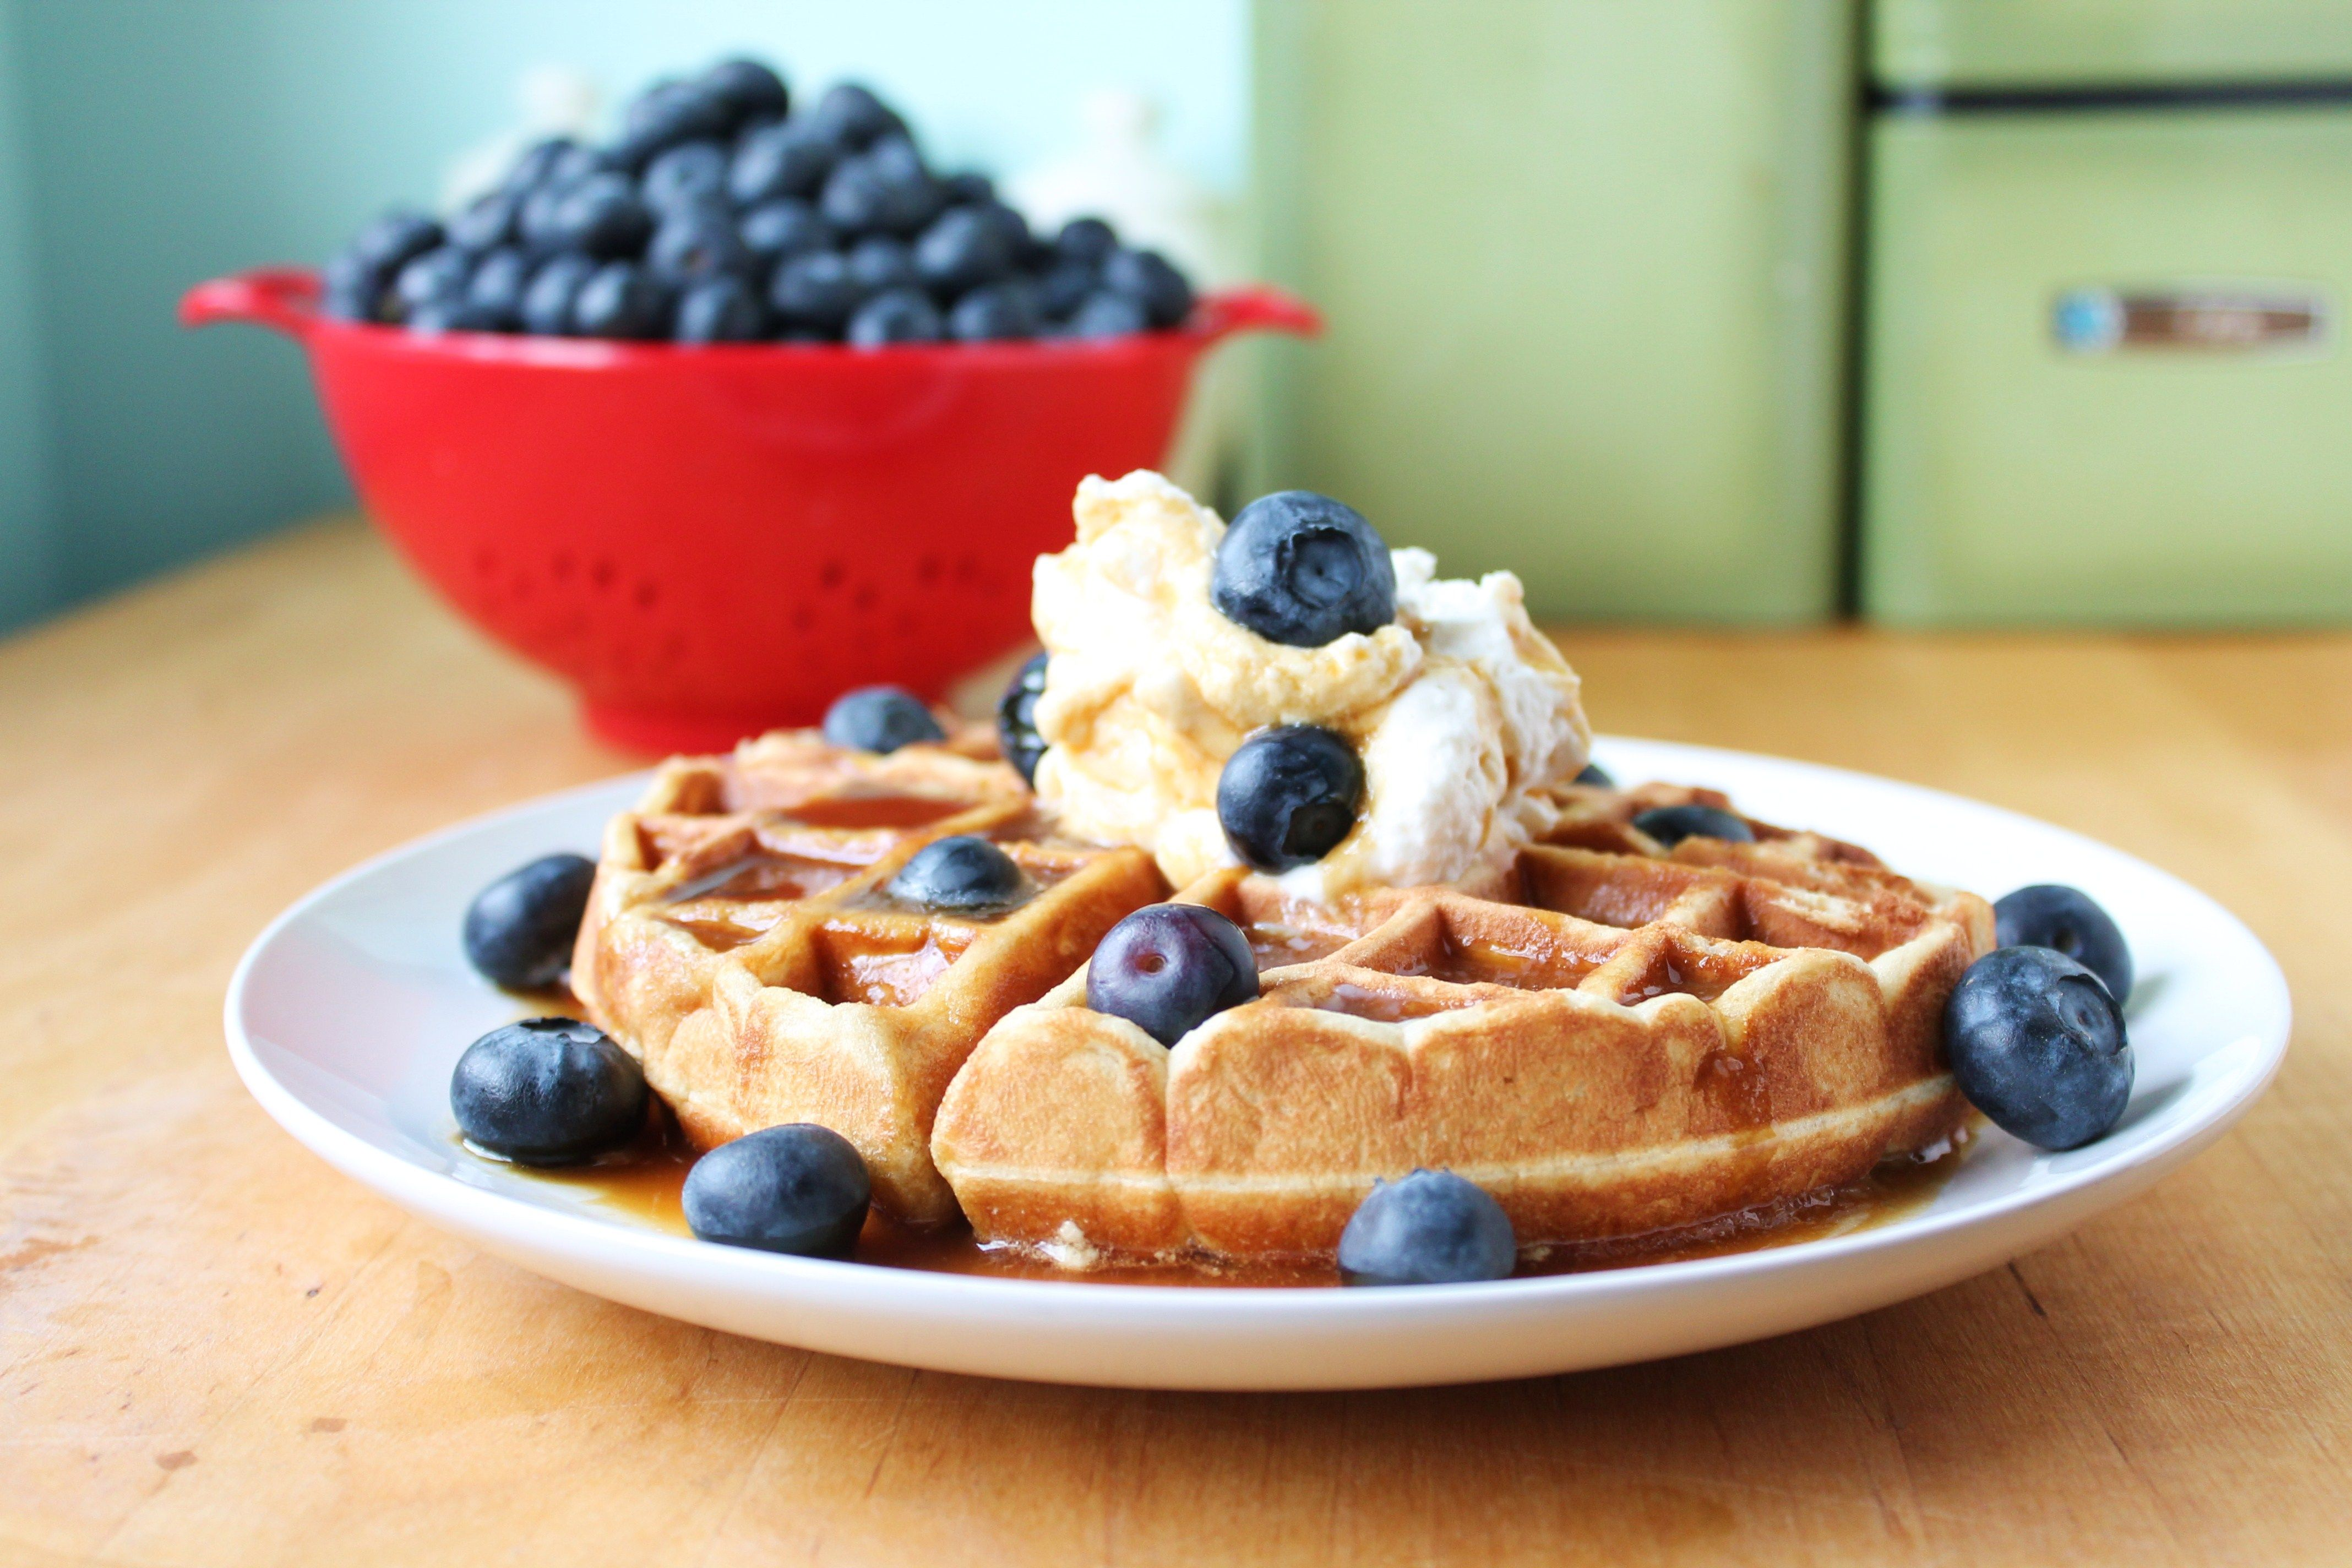 Gluten Free Waffles 1 2 Cup Melted Butter Oil 6 Eggs 1